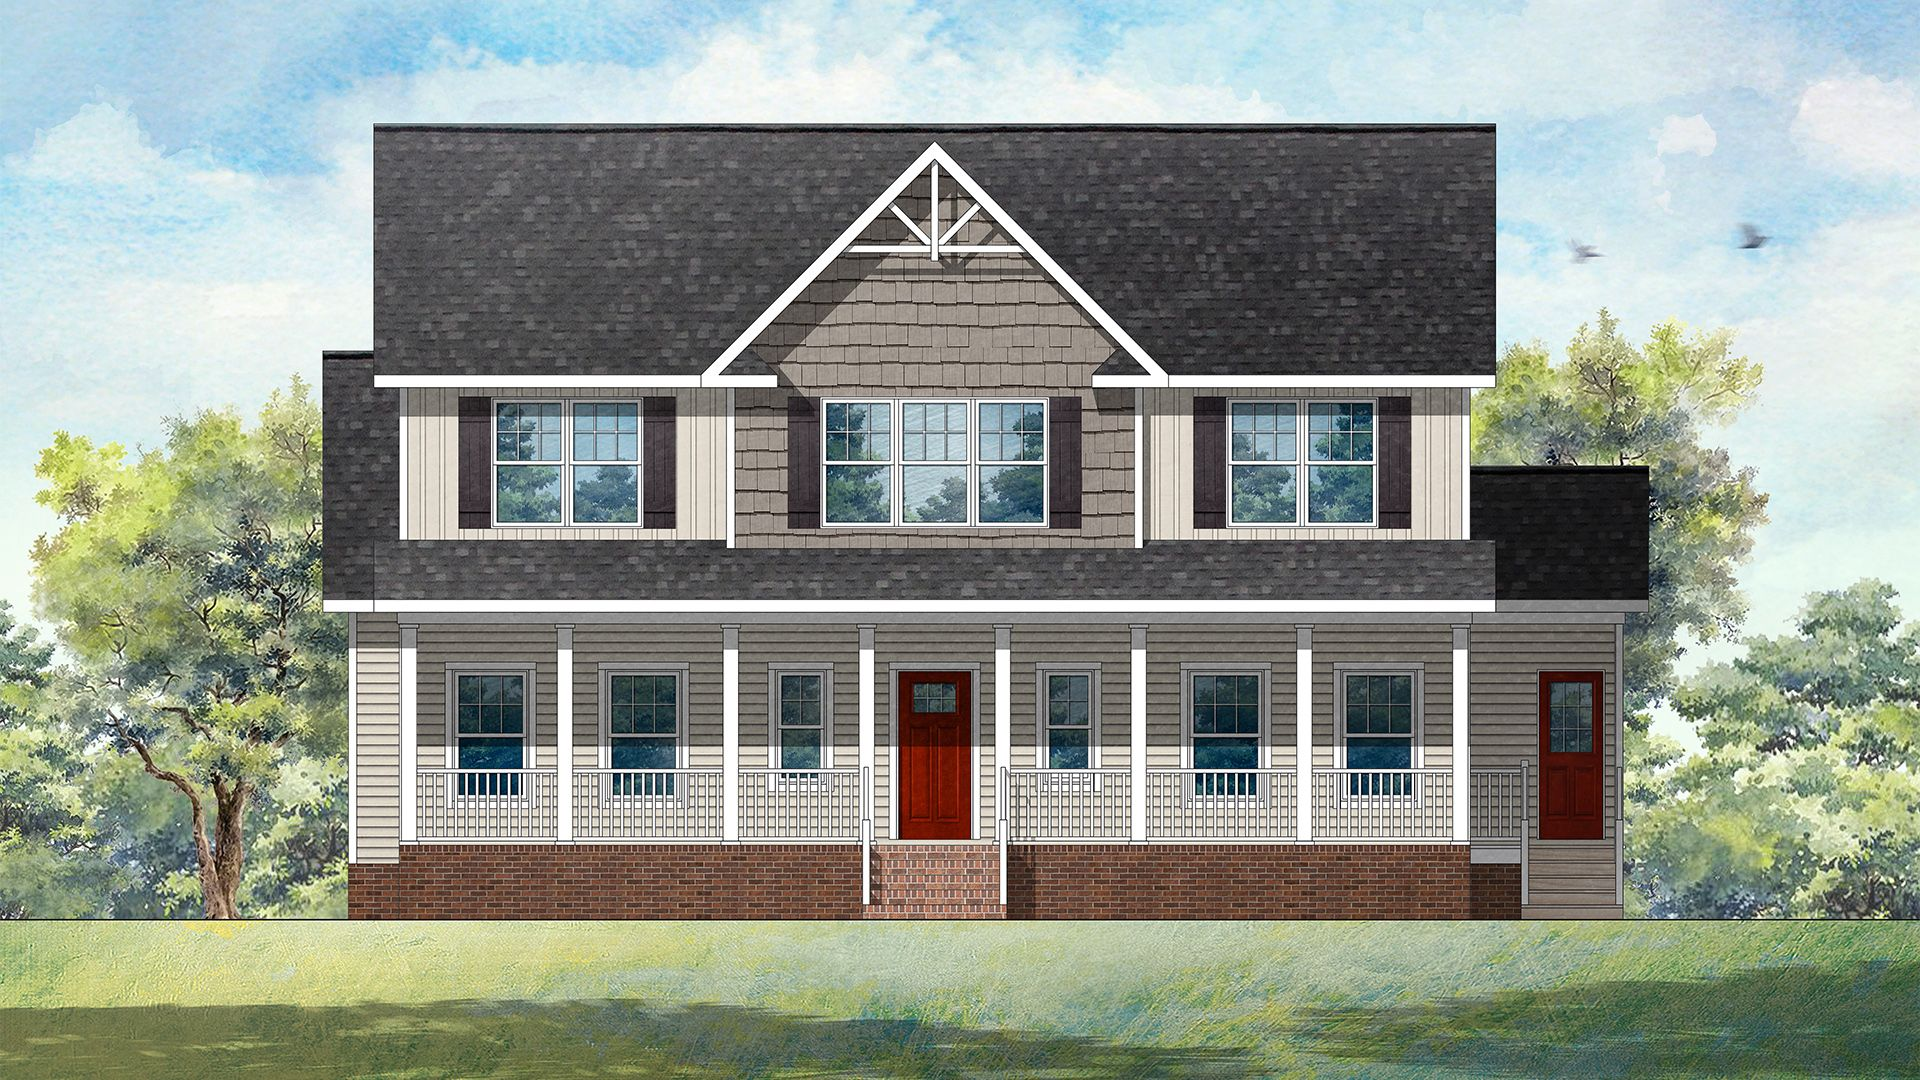 This Broad Shouldered Two Story House Plan Captures Old Time Ambiance With A Large Front Porch And A Ce House Front Porch Two Story House Plans House Exterior